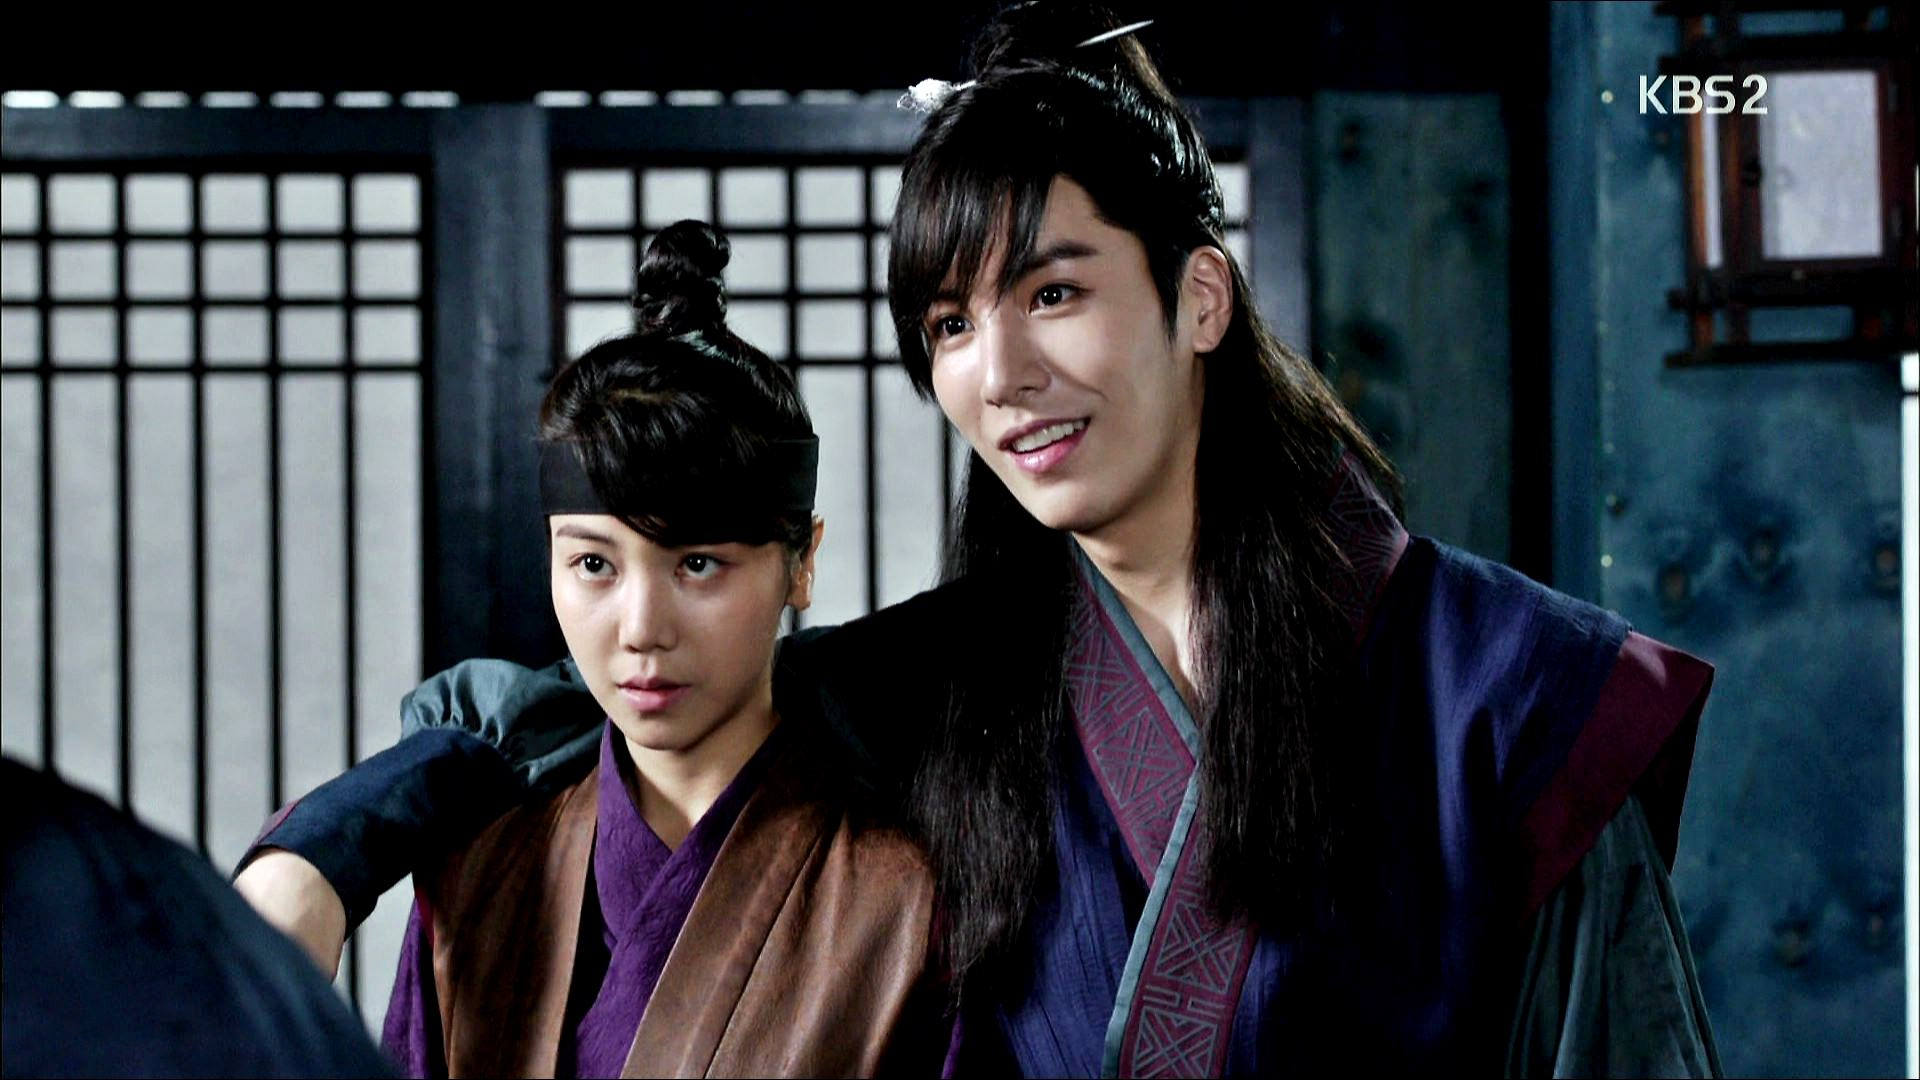 The Blade and Petal Episode 11